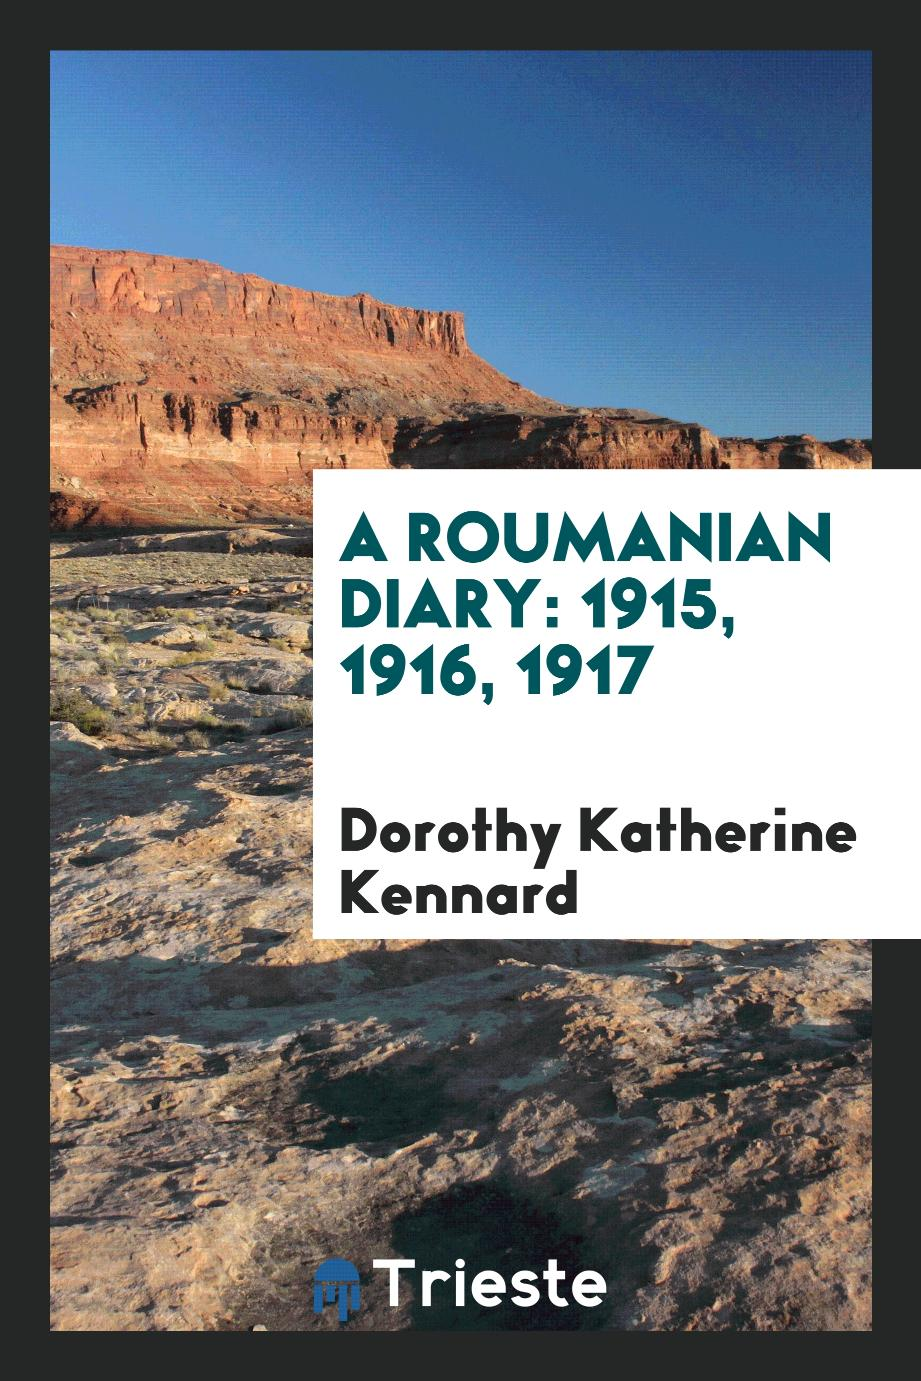 A Roumanian Diary: 1915, 1916, 1917